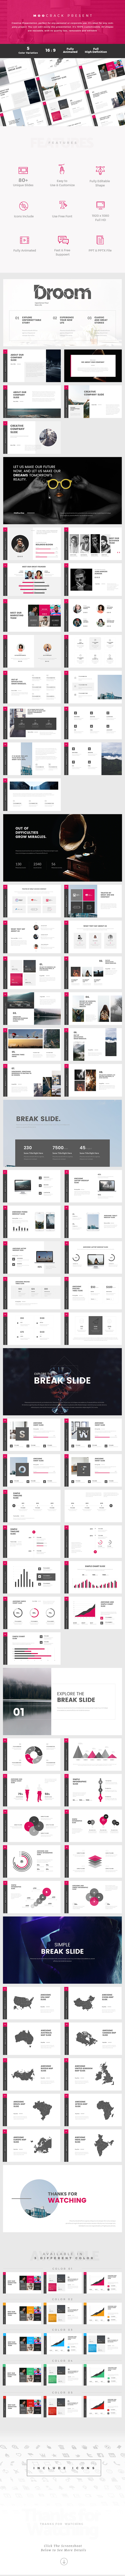 GraphicRiver Droom Creative & Minimal Powerpoint Template 20957797